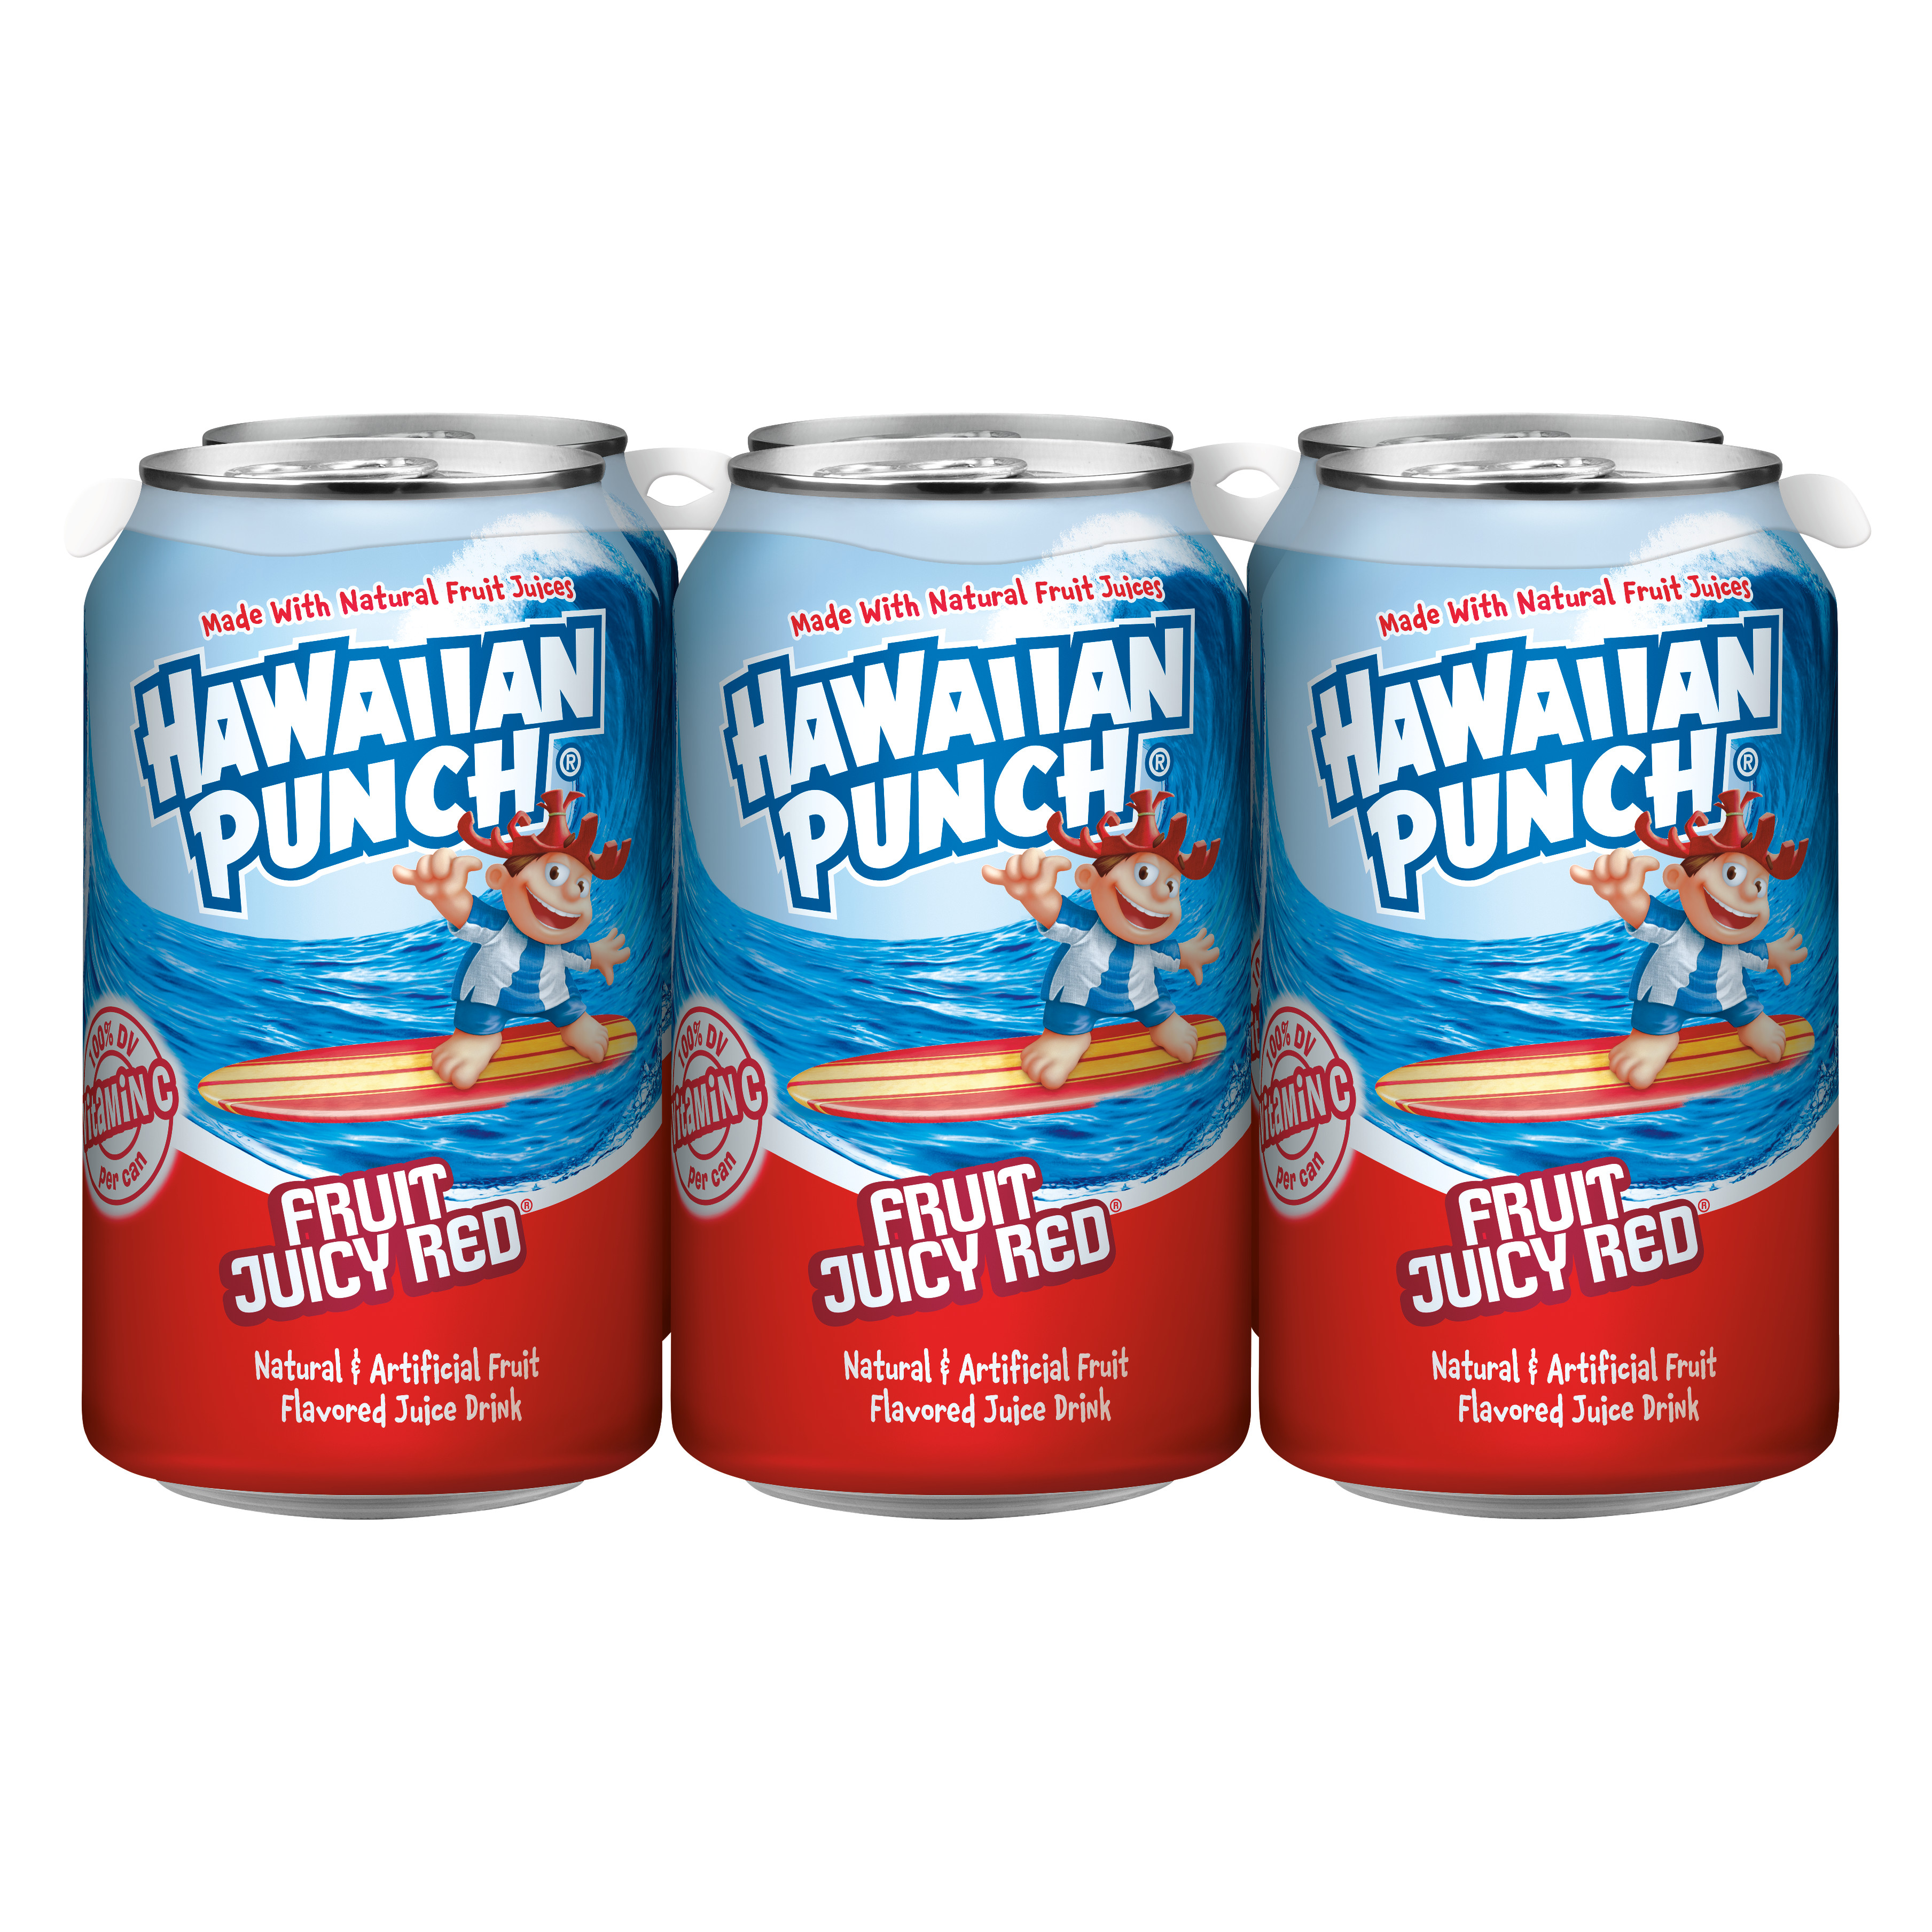 Hawaiian Punch Gluten-Free Fruit Juicy Red Juice Drink, 12 Fl. Oz., 6 Count